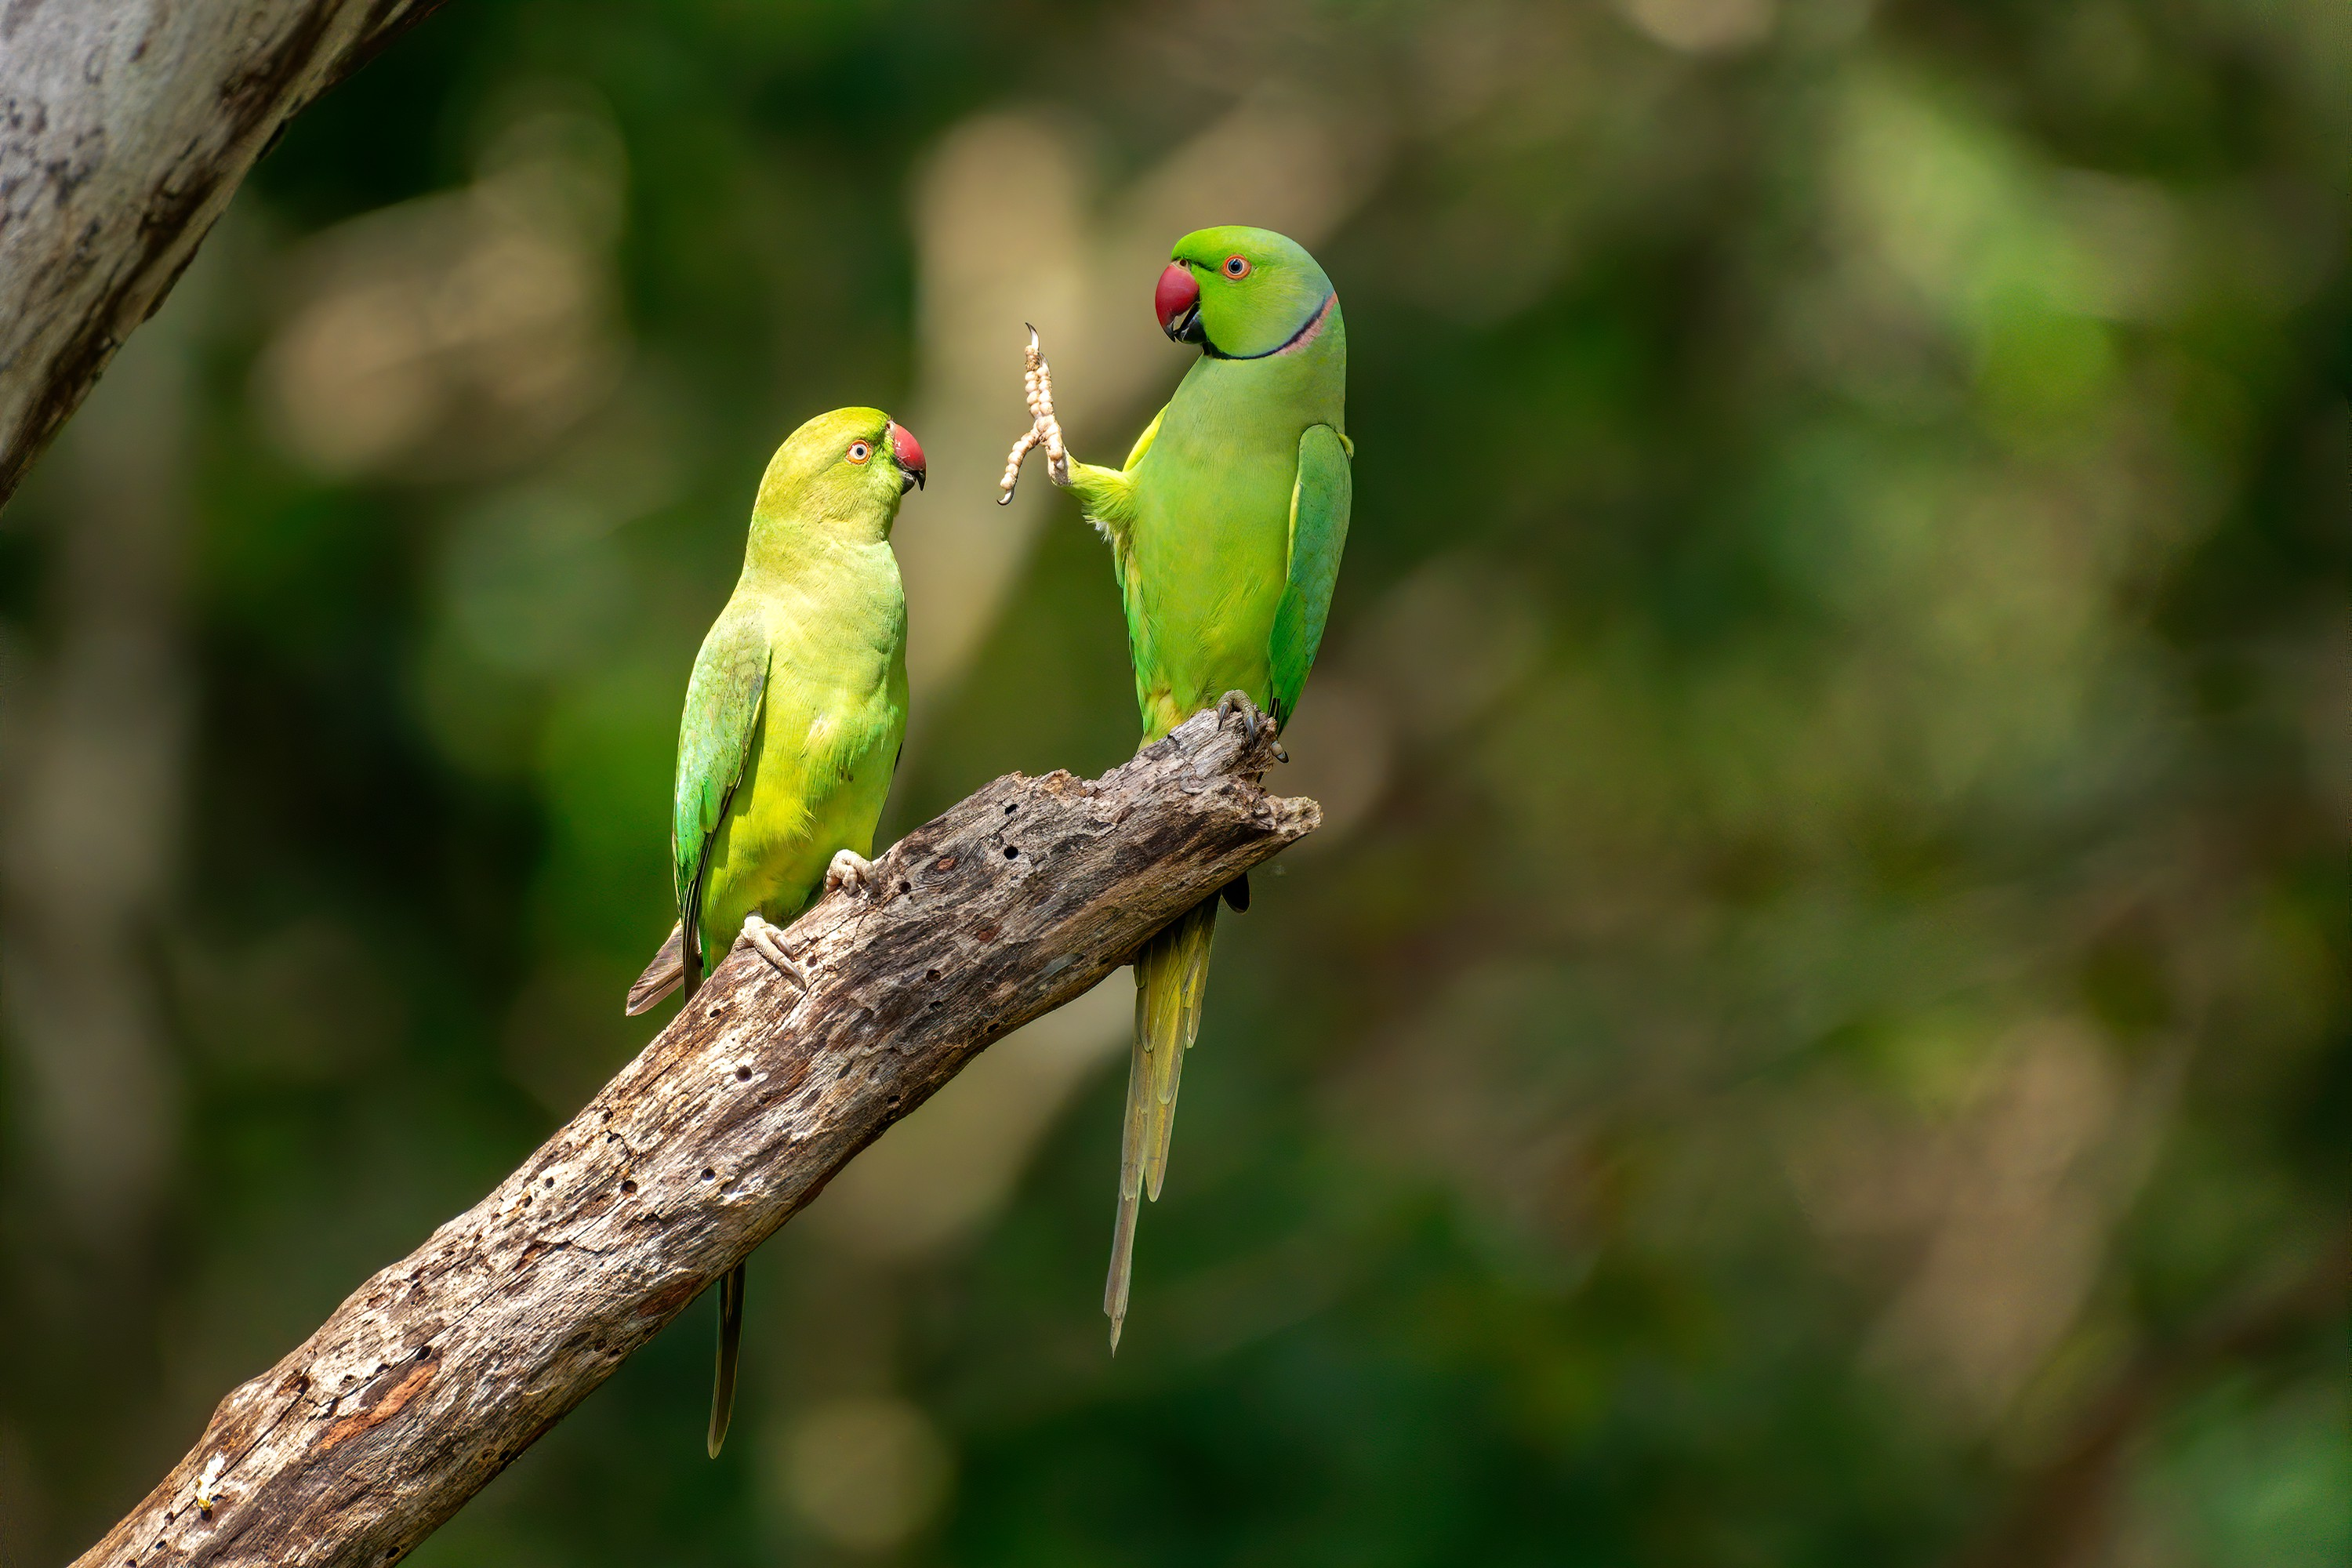 Two green parrots regarding one another on a branch, one has her foot and claw outstretched in the face of the other